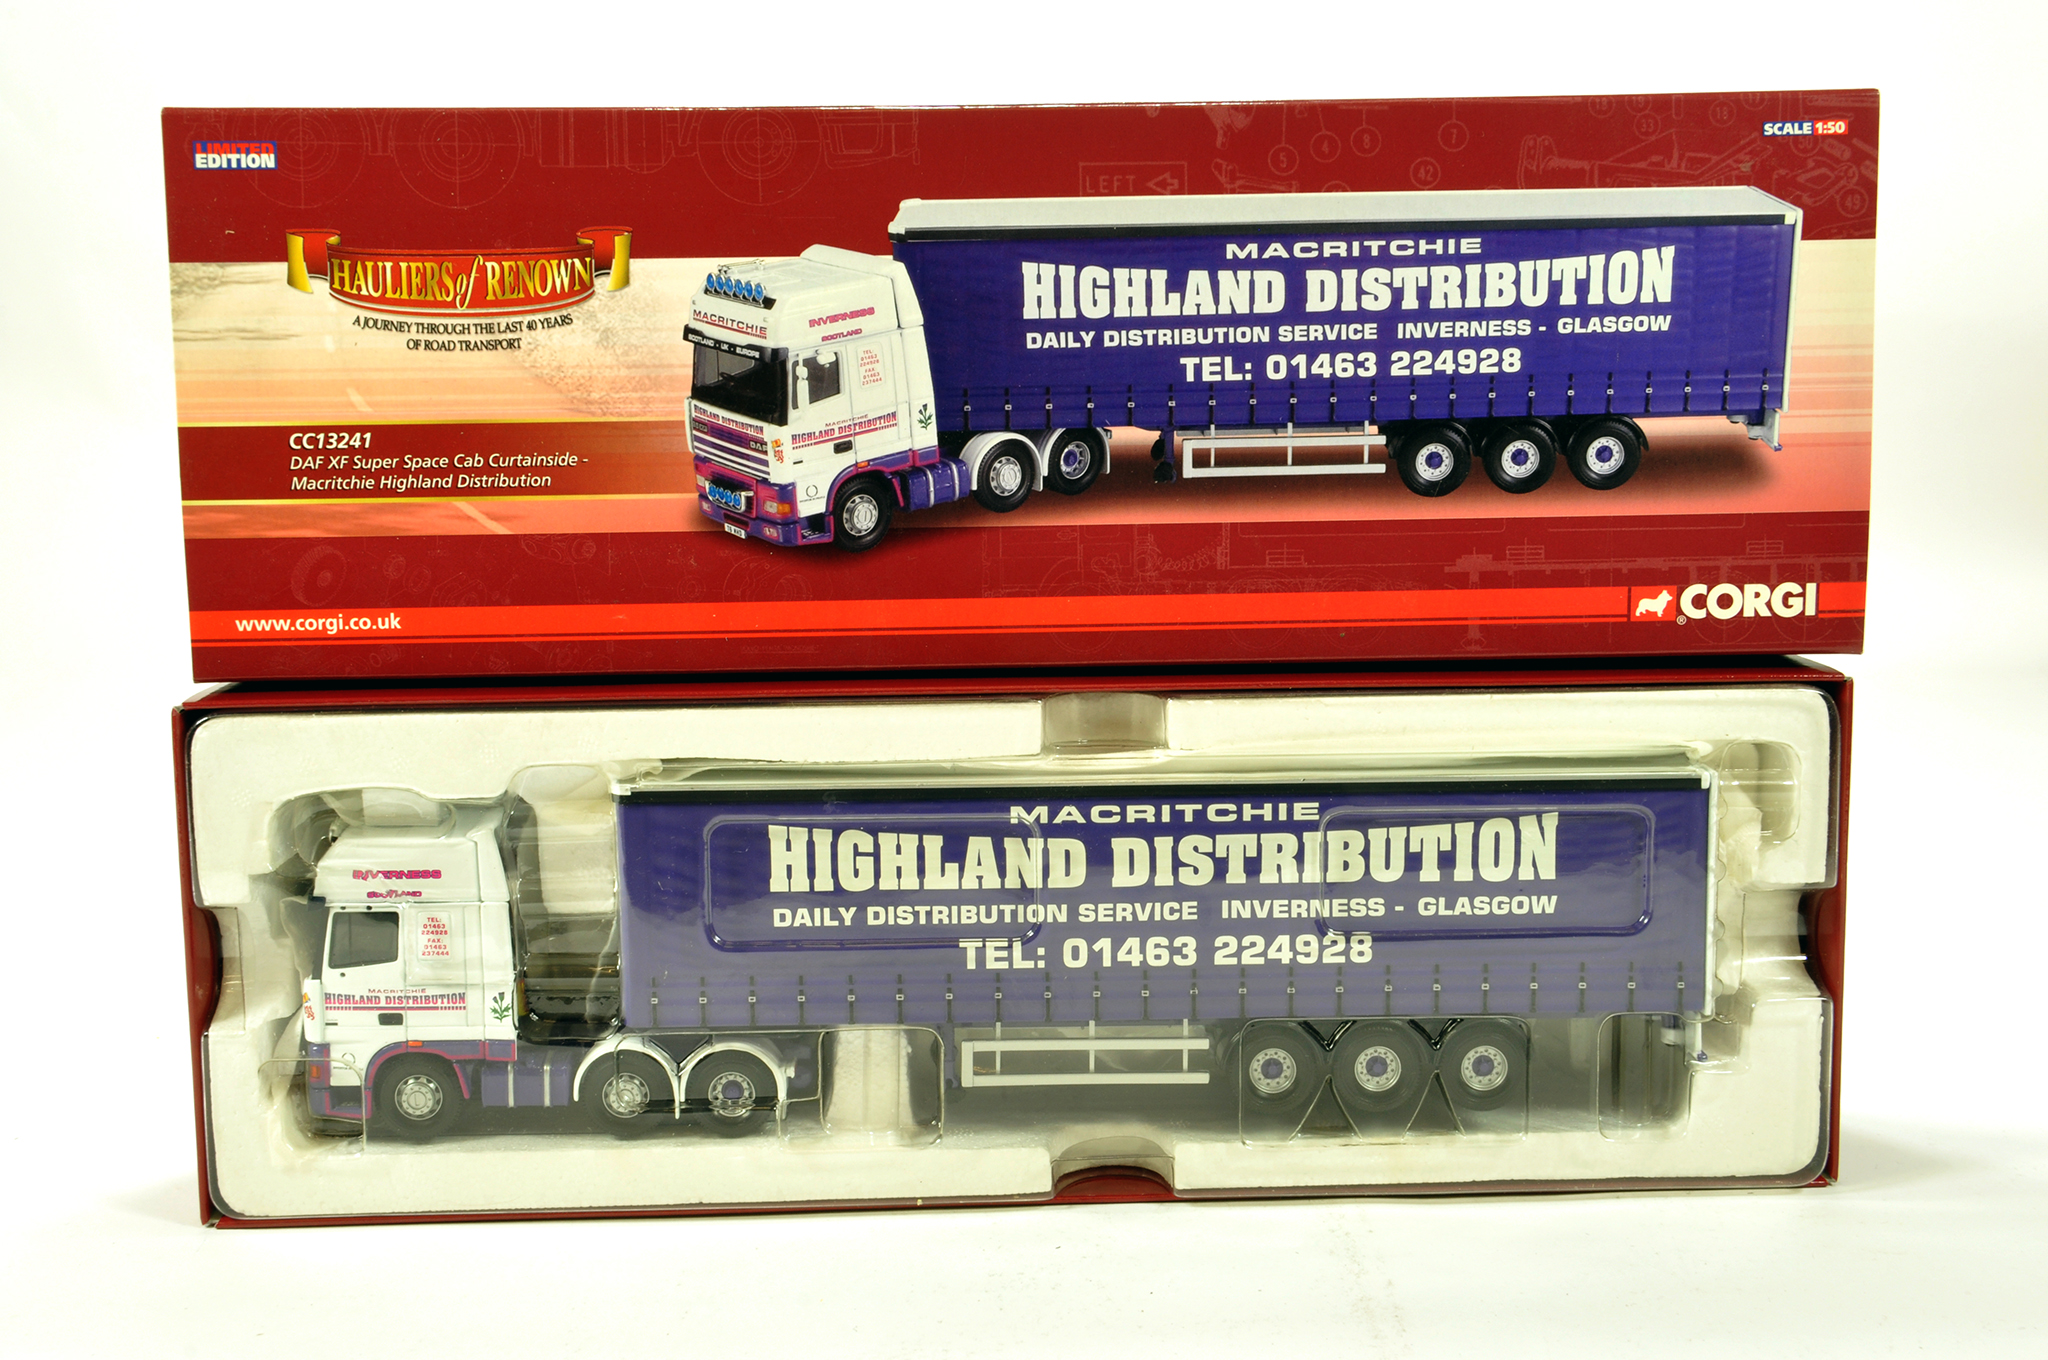 Corgi 1/50 diecast truck issue comprising No. CC13241 DAF XF Super Space Cab in livery of